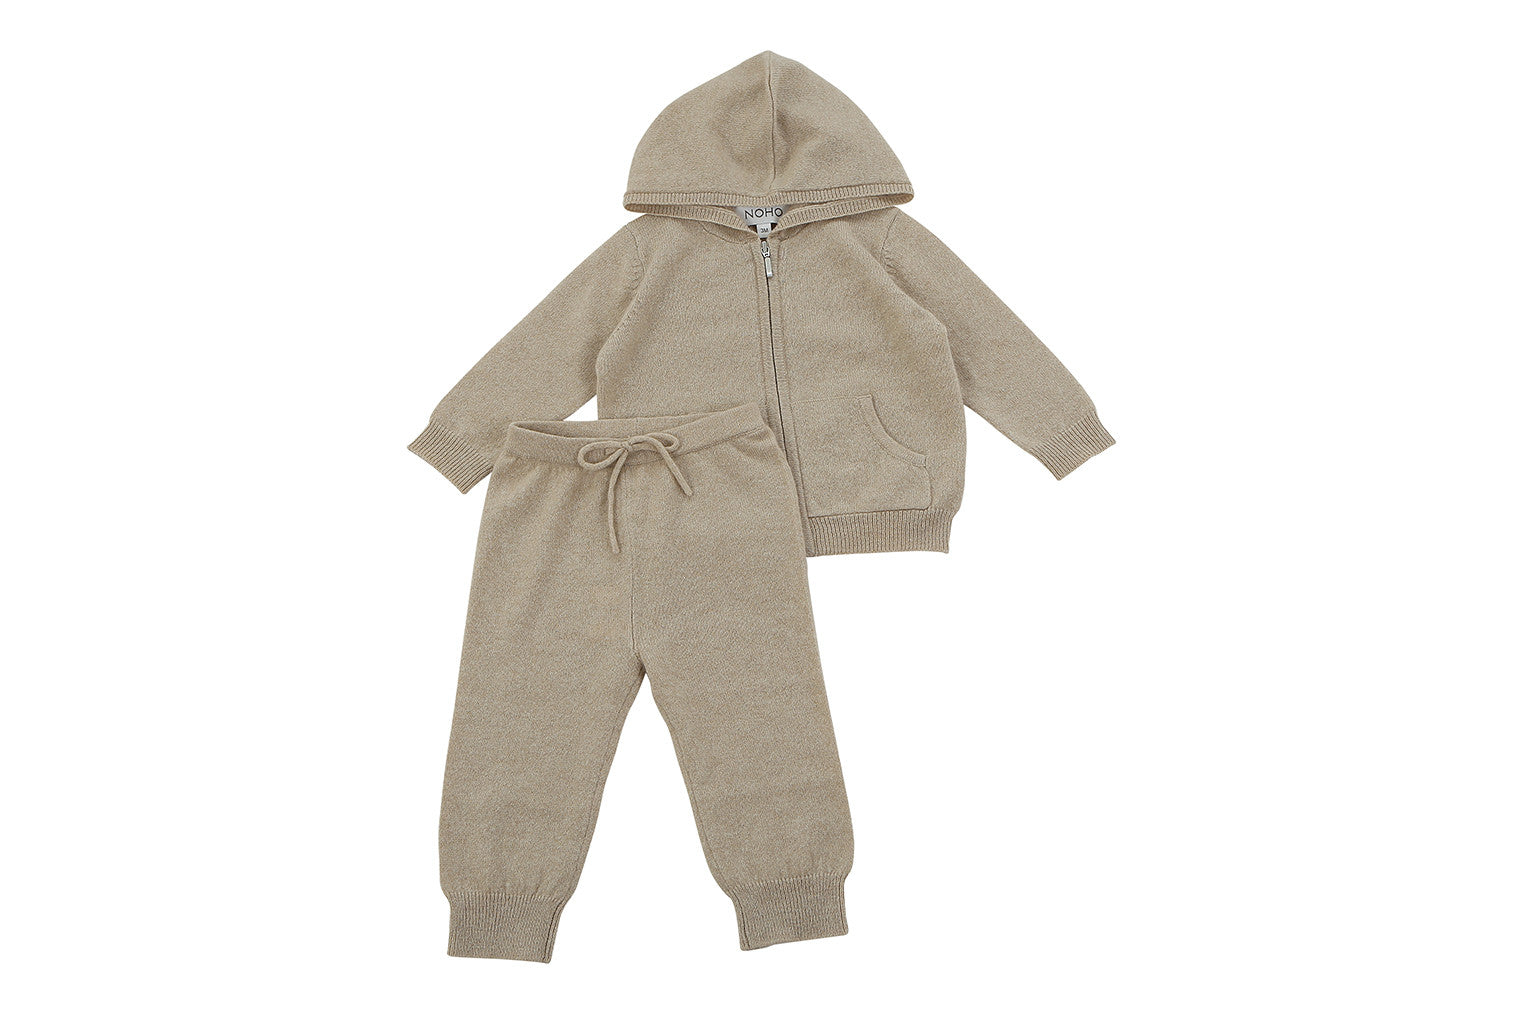 light brown cashmere baby clothes